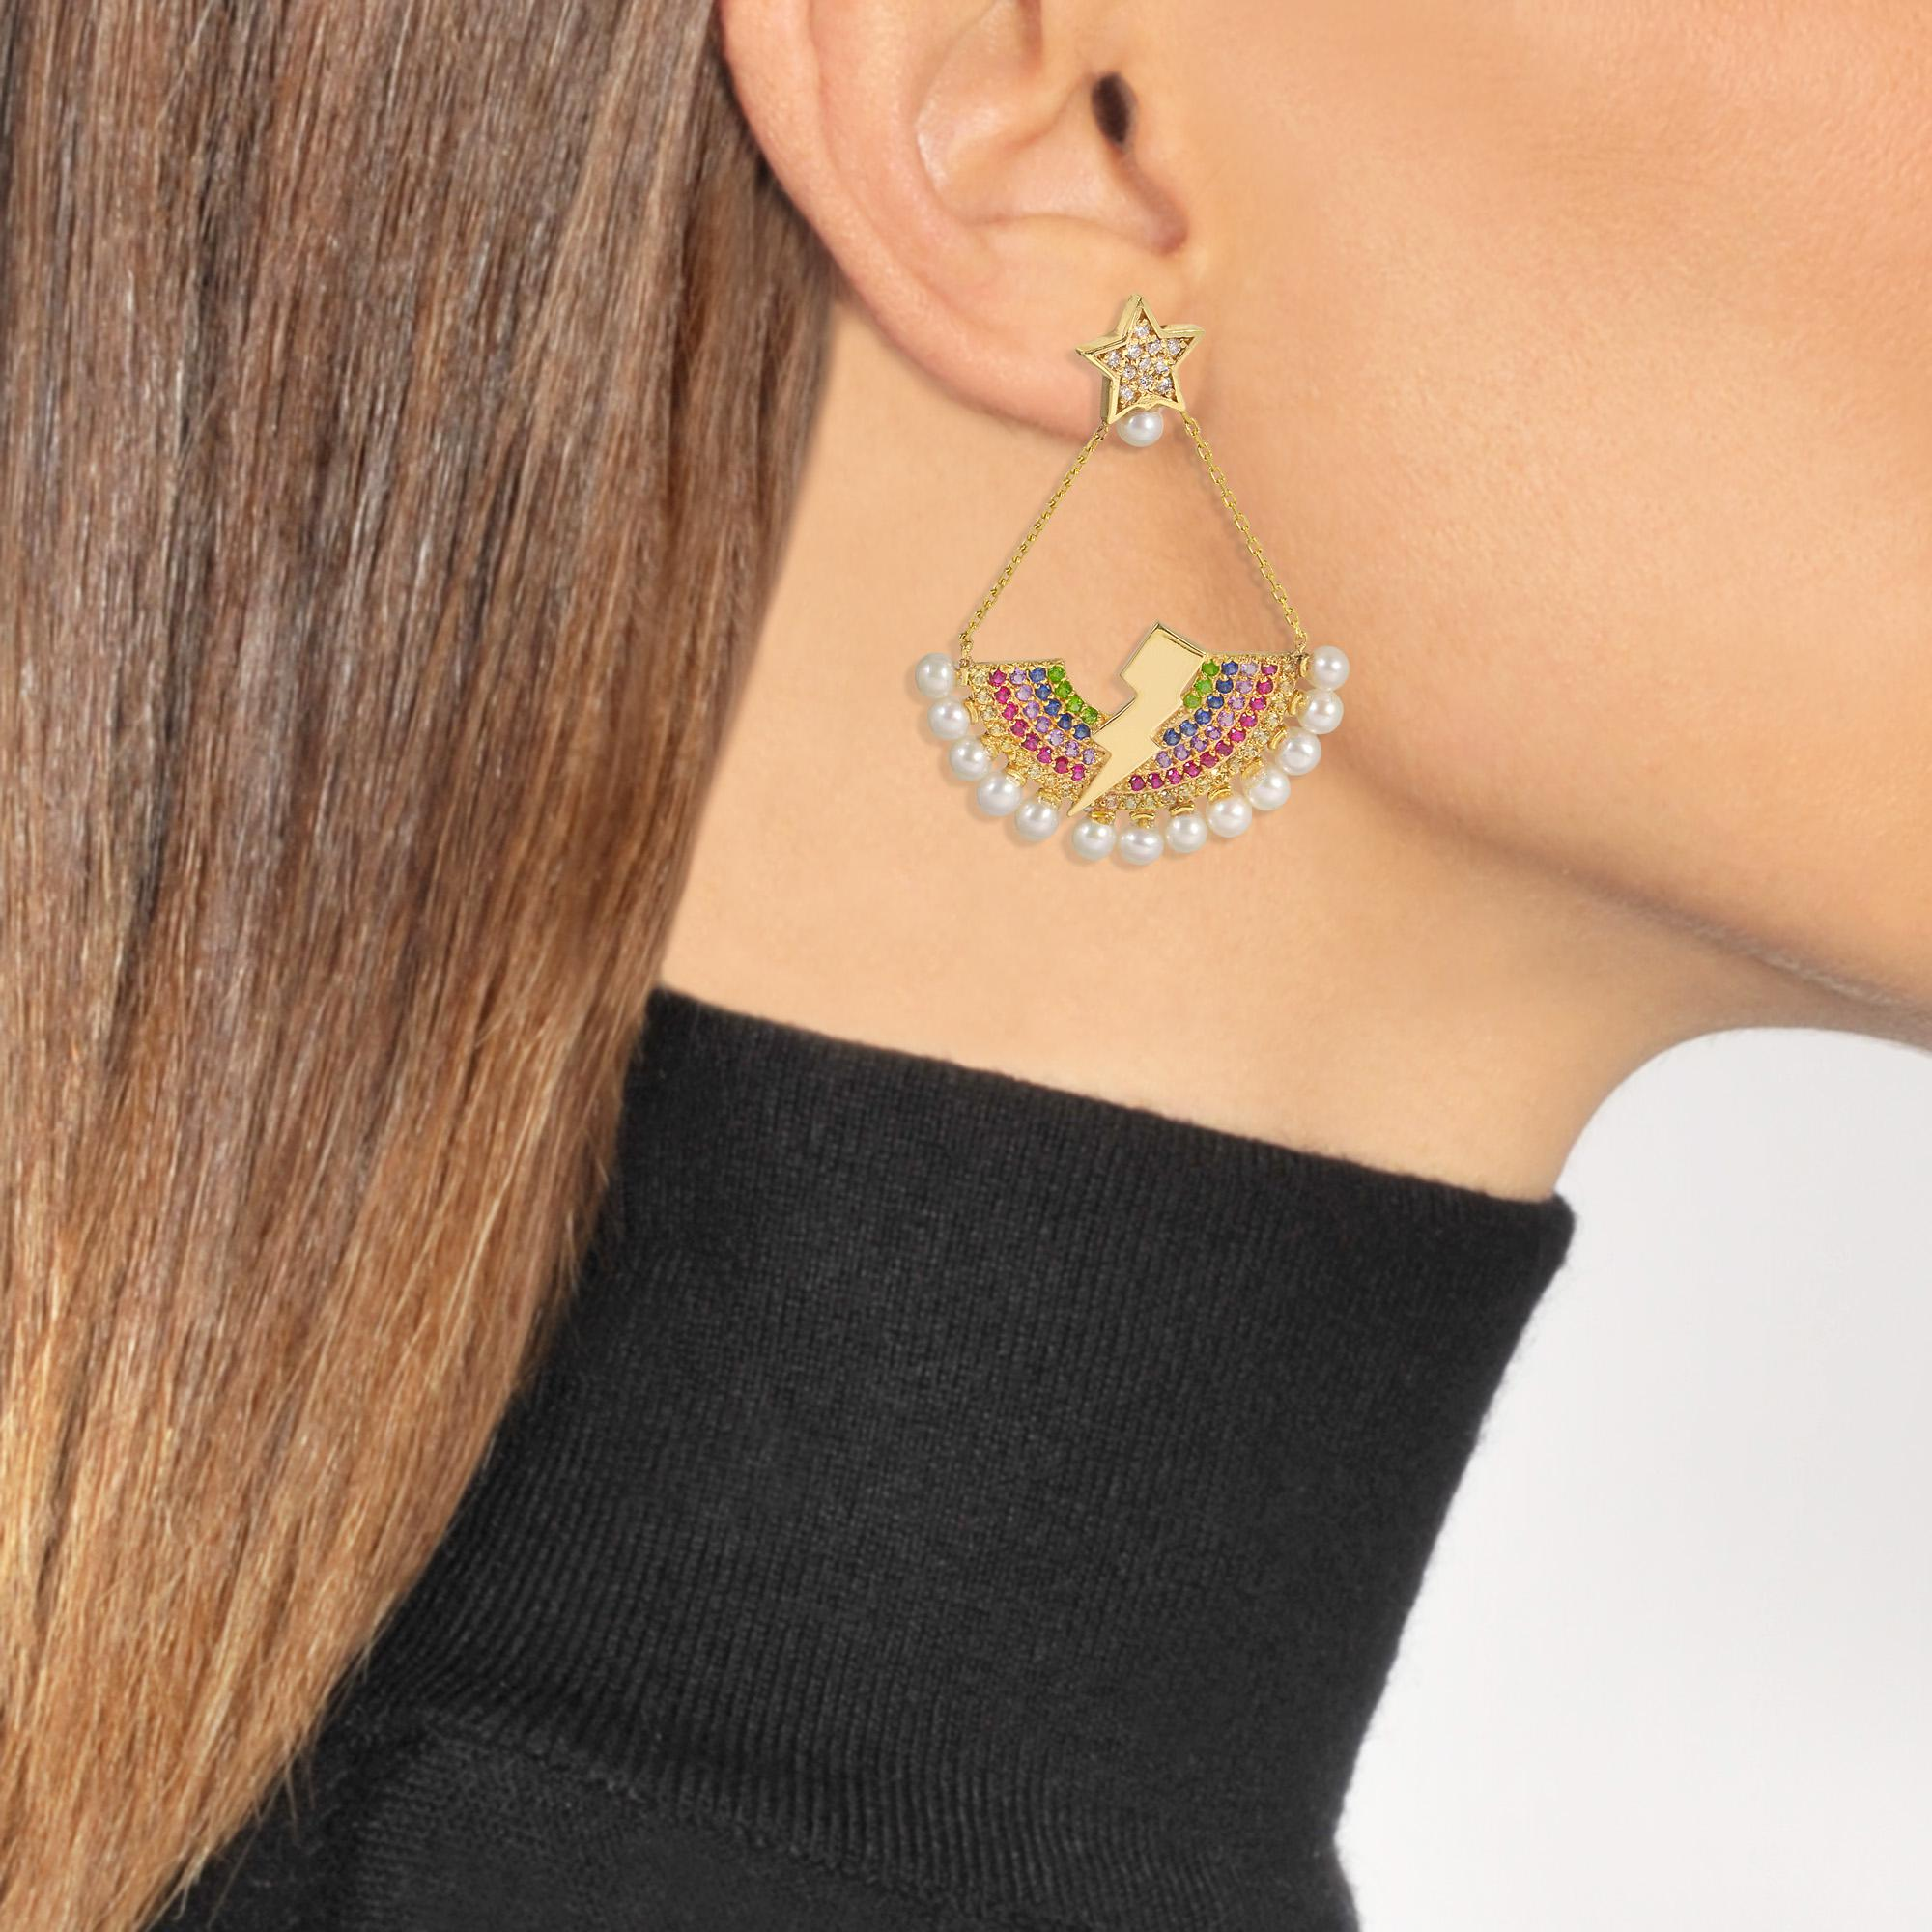 Rainbow Lighting Bulb Mono Earring in 14K Gold and Precious Stones Anton Heunis V4Jz1557Hn